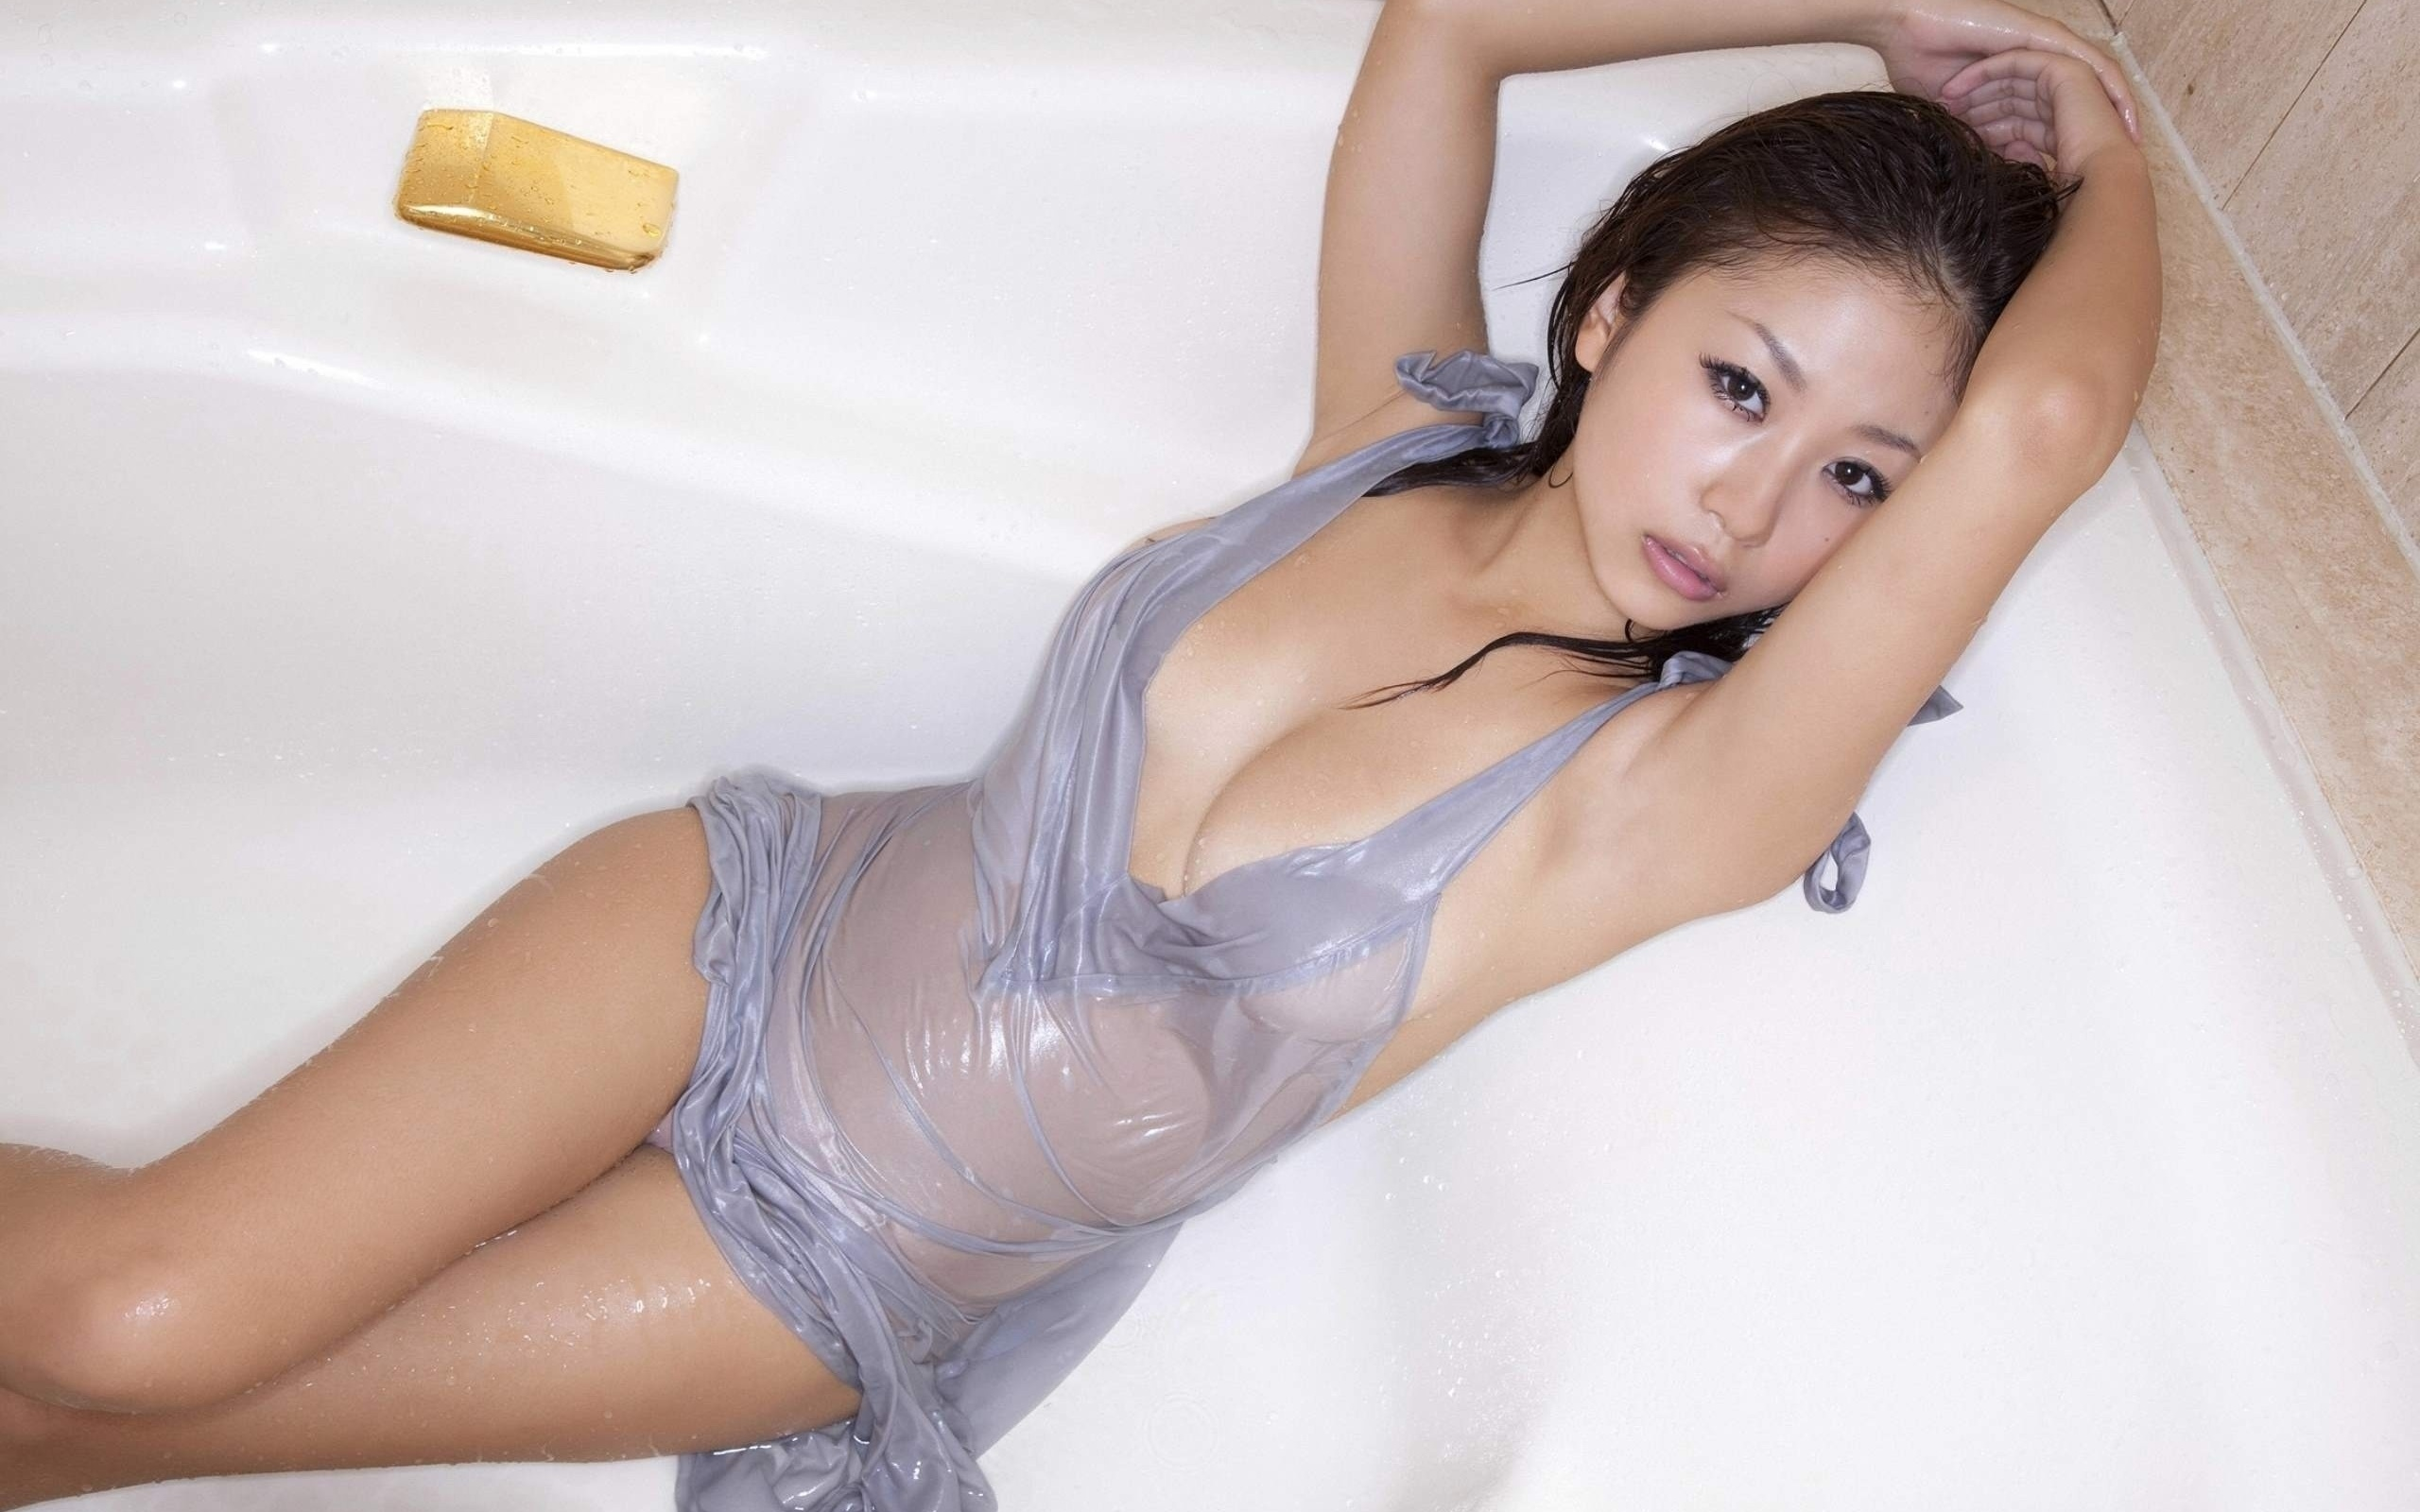 wet-asian-girl-free-pregnant-lactating-hardcore-pictures